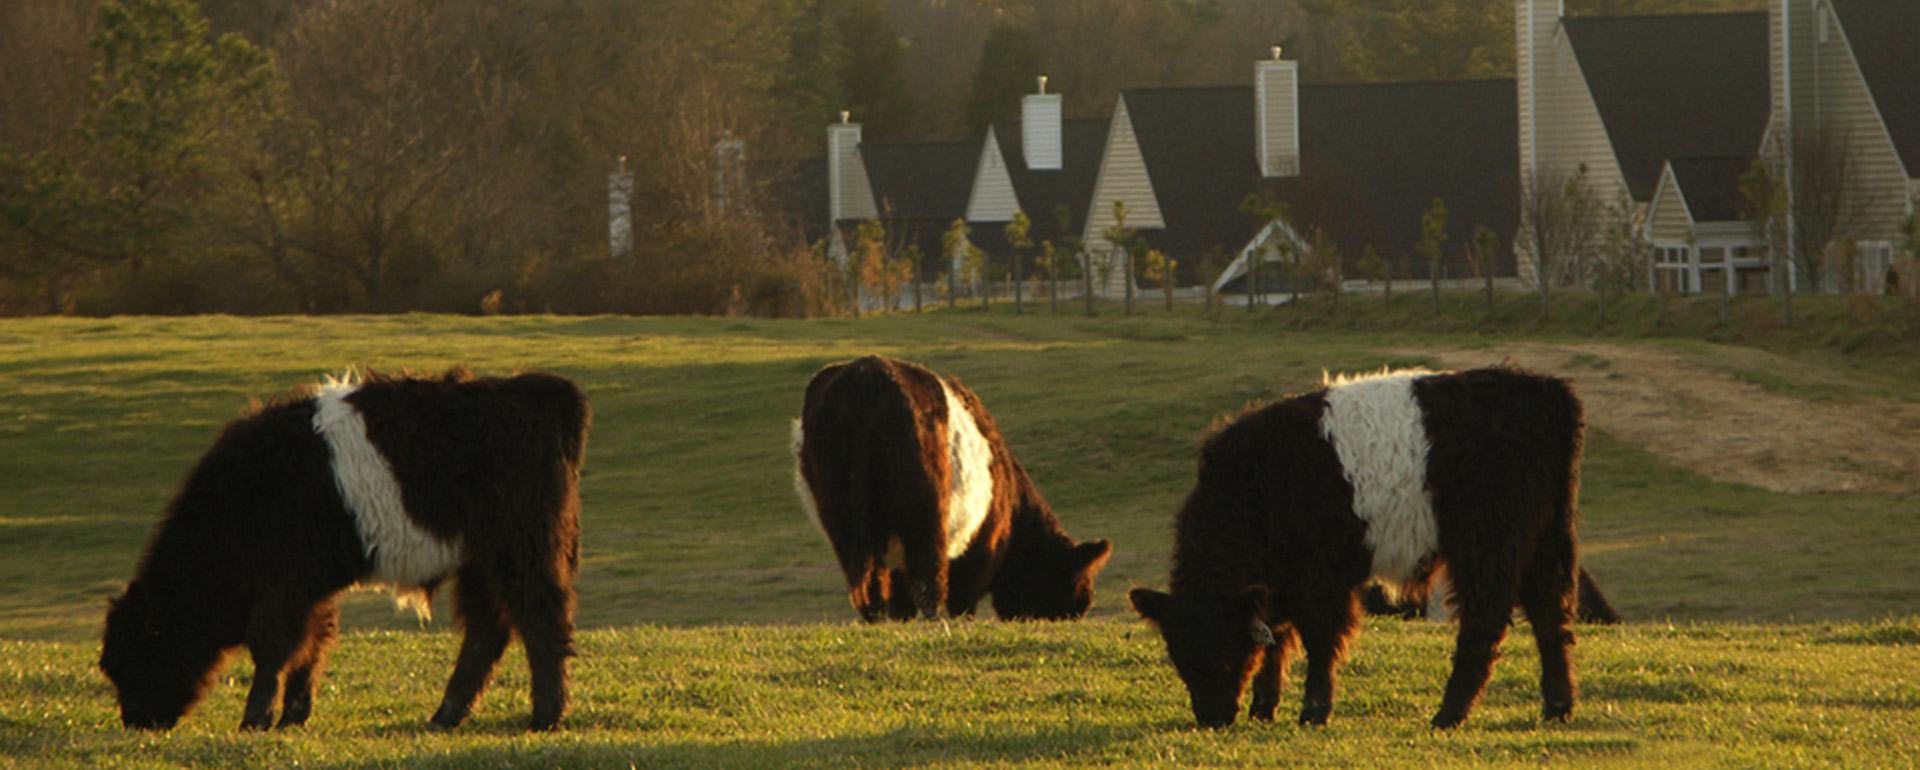 Belted Galloway cows in the Weathersfield pasture in Fearrington Village